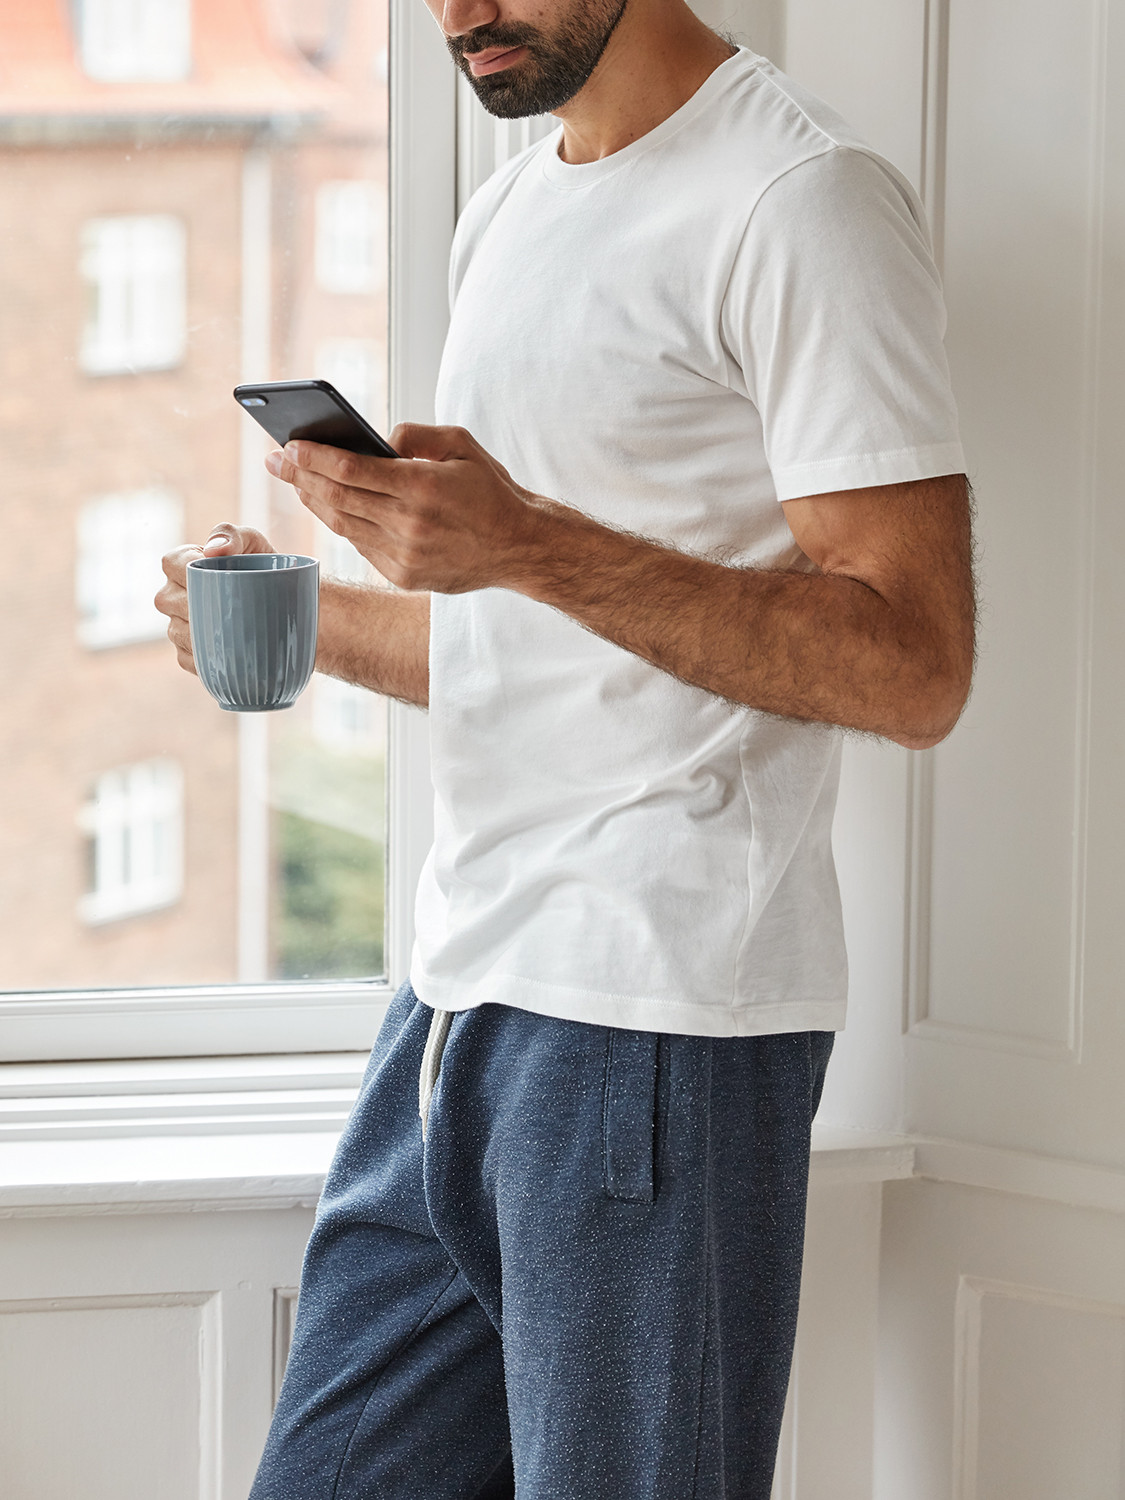 Men's outfit idea for 2021 with gray hoodie, white crew neck t-shirt, sweatpants. Suitable for spring, summer, fall and winter.